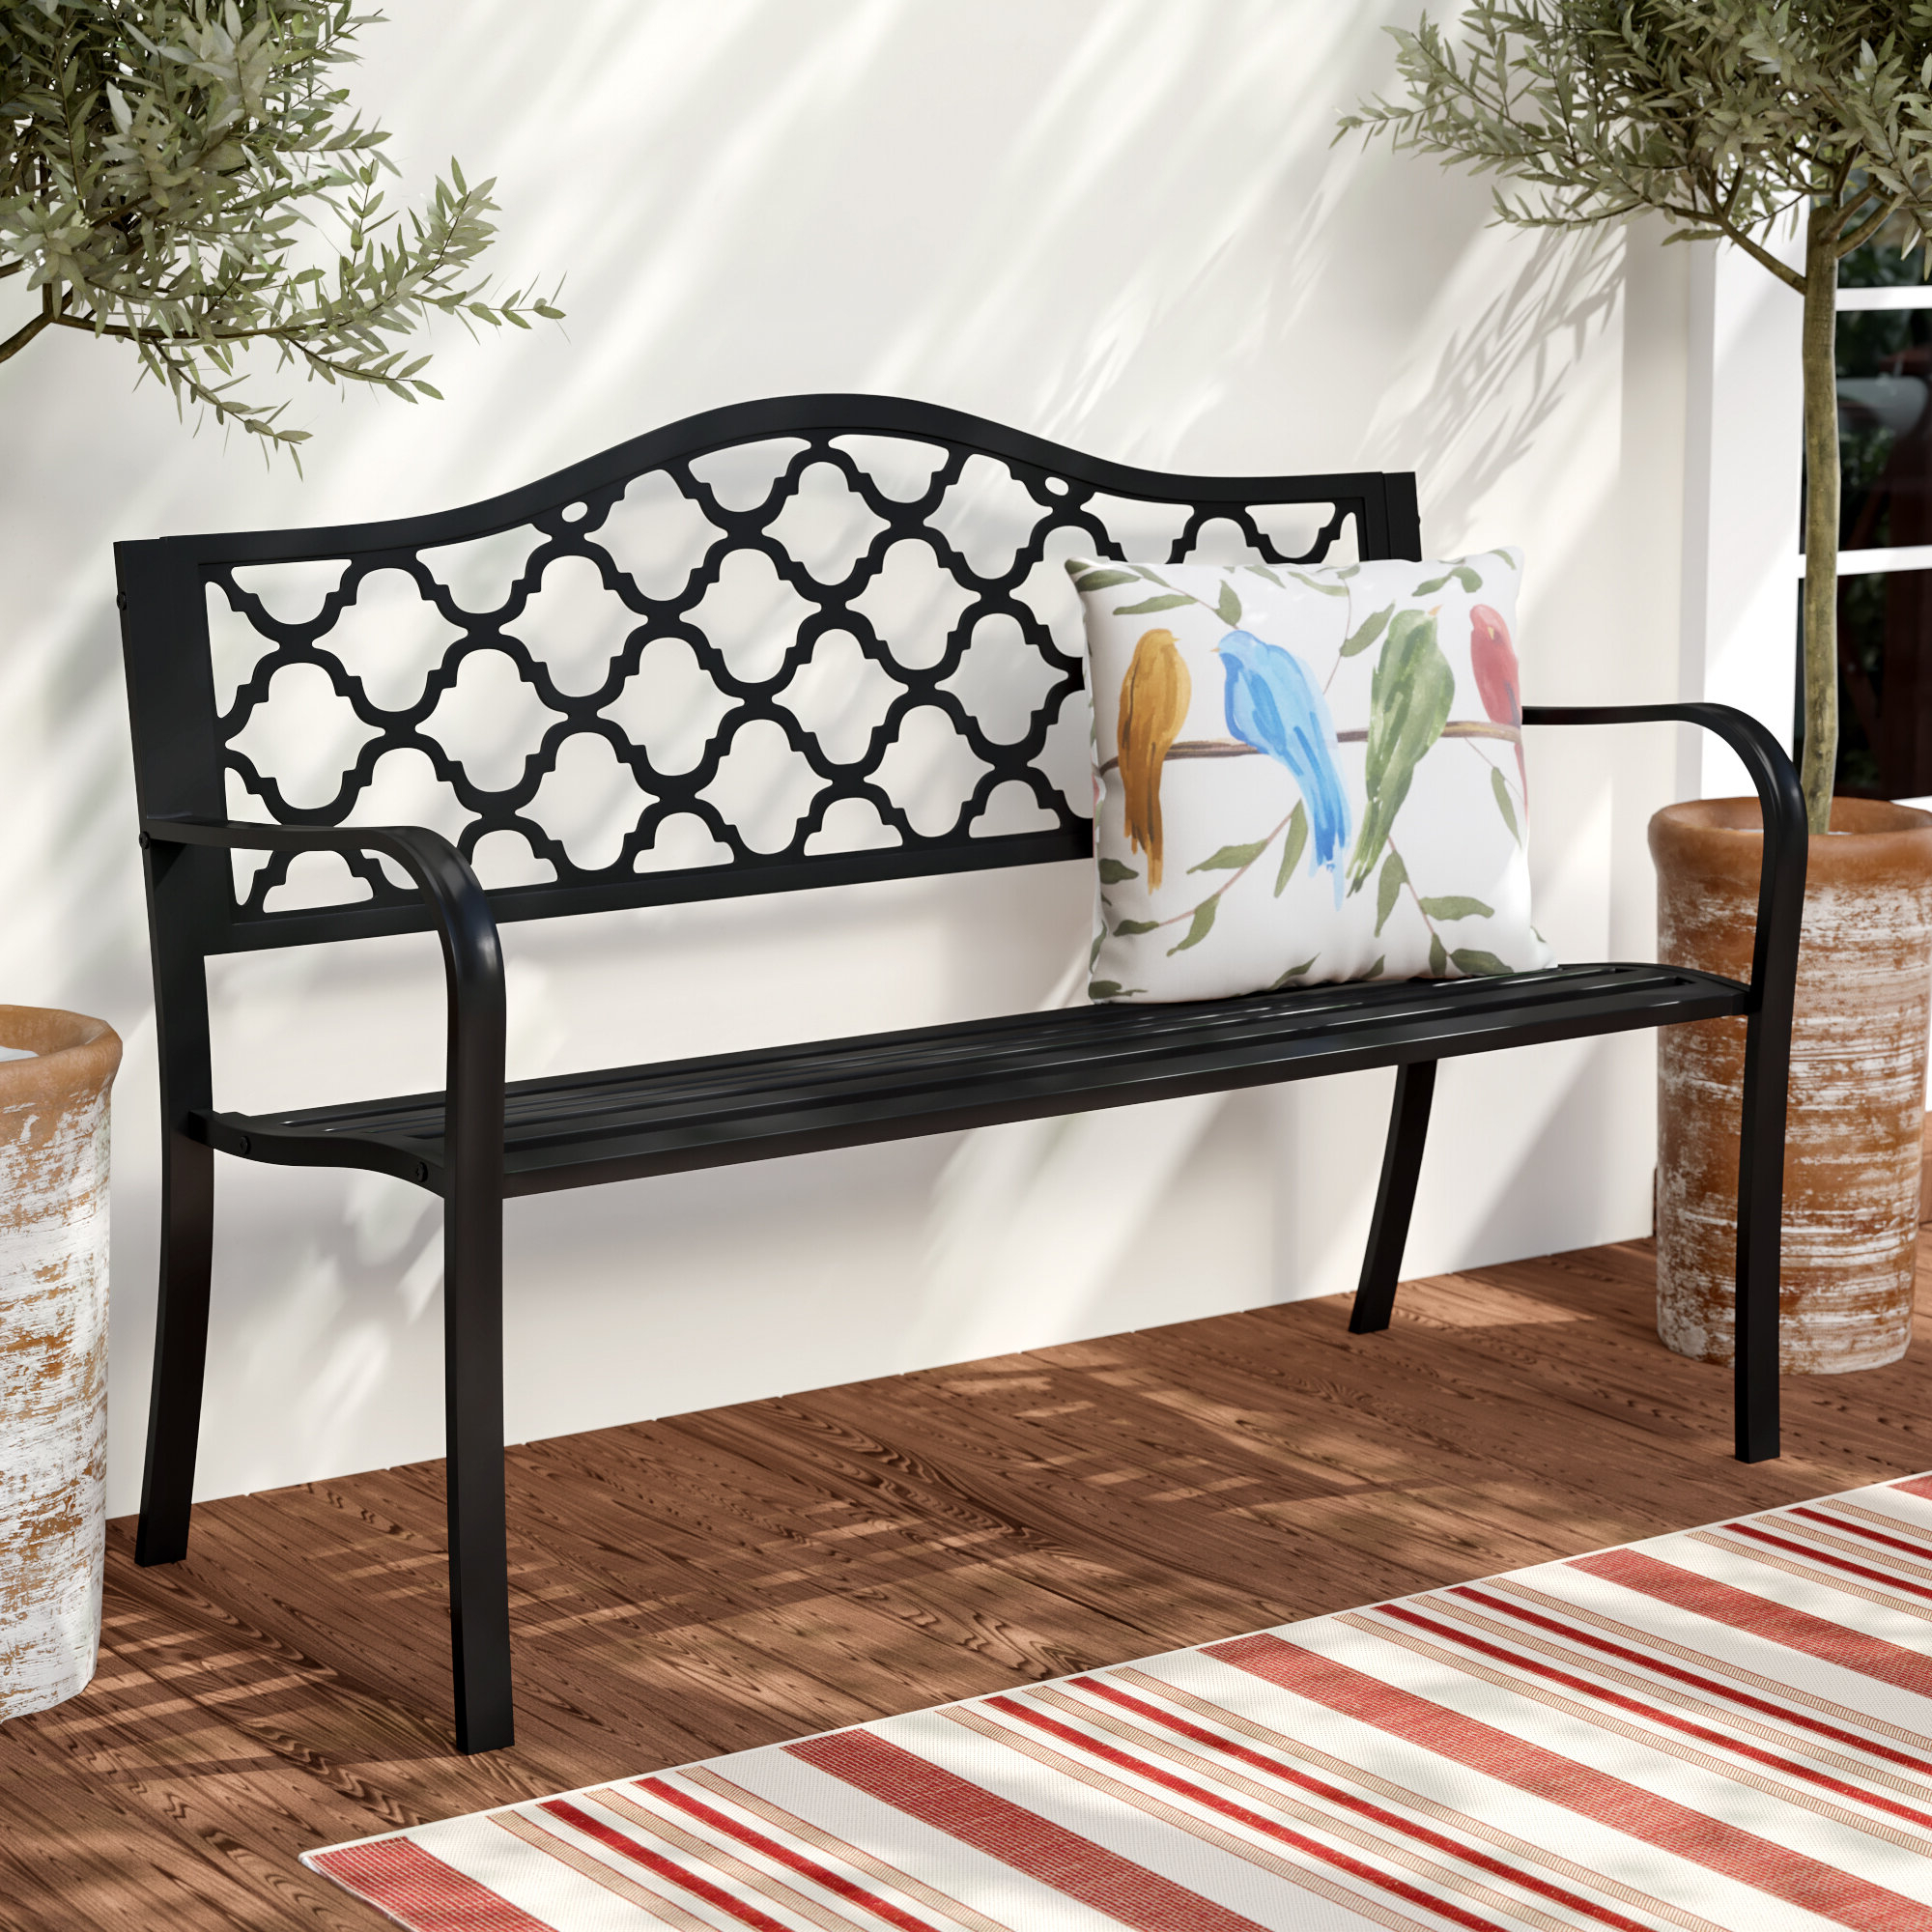 Braymer Patio Cast Iron Garden Bench Within Best And Newest Ismenia Checkered Outdoor Cast Aluminum Patio Garden Benches (View 28 of 30)